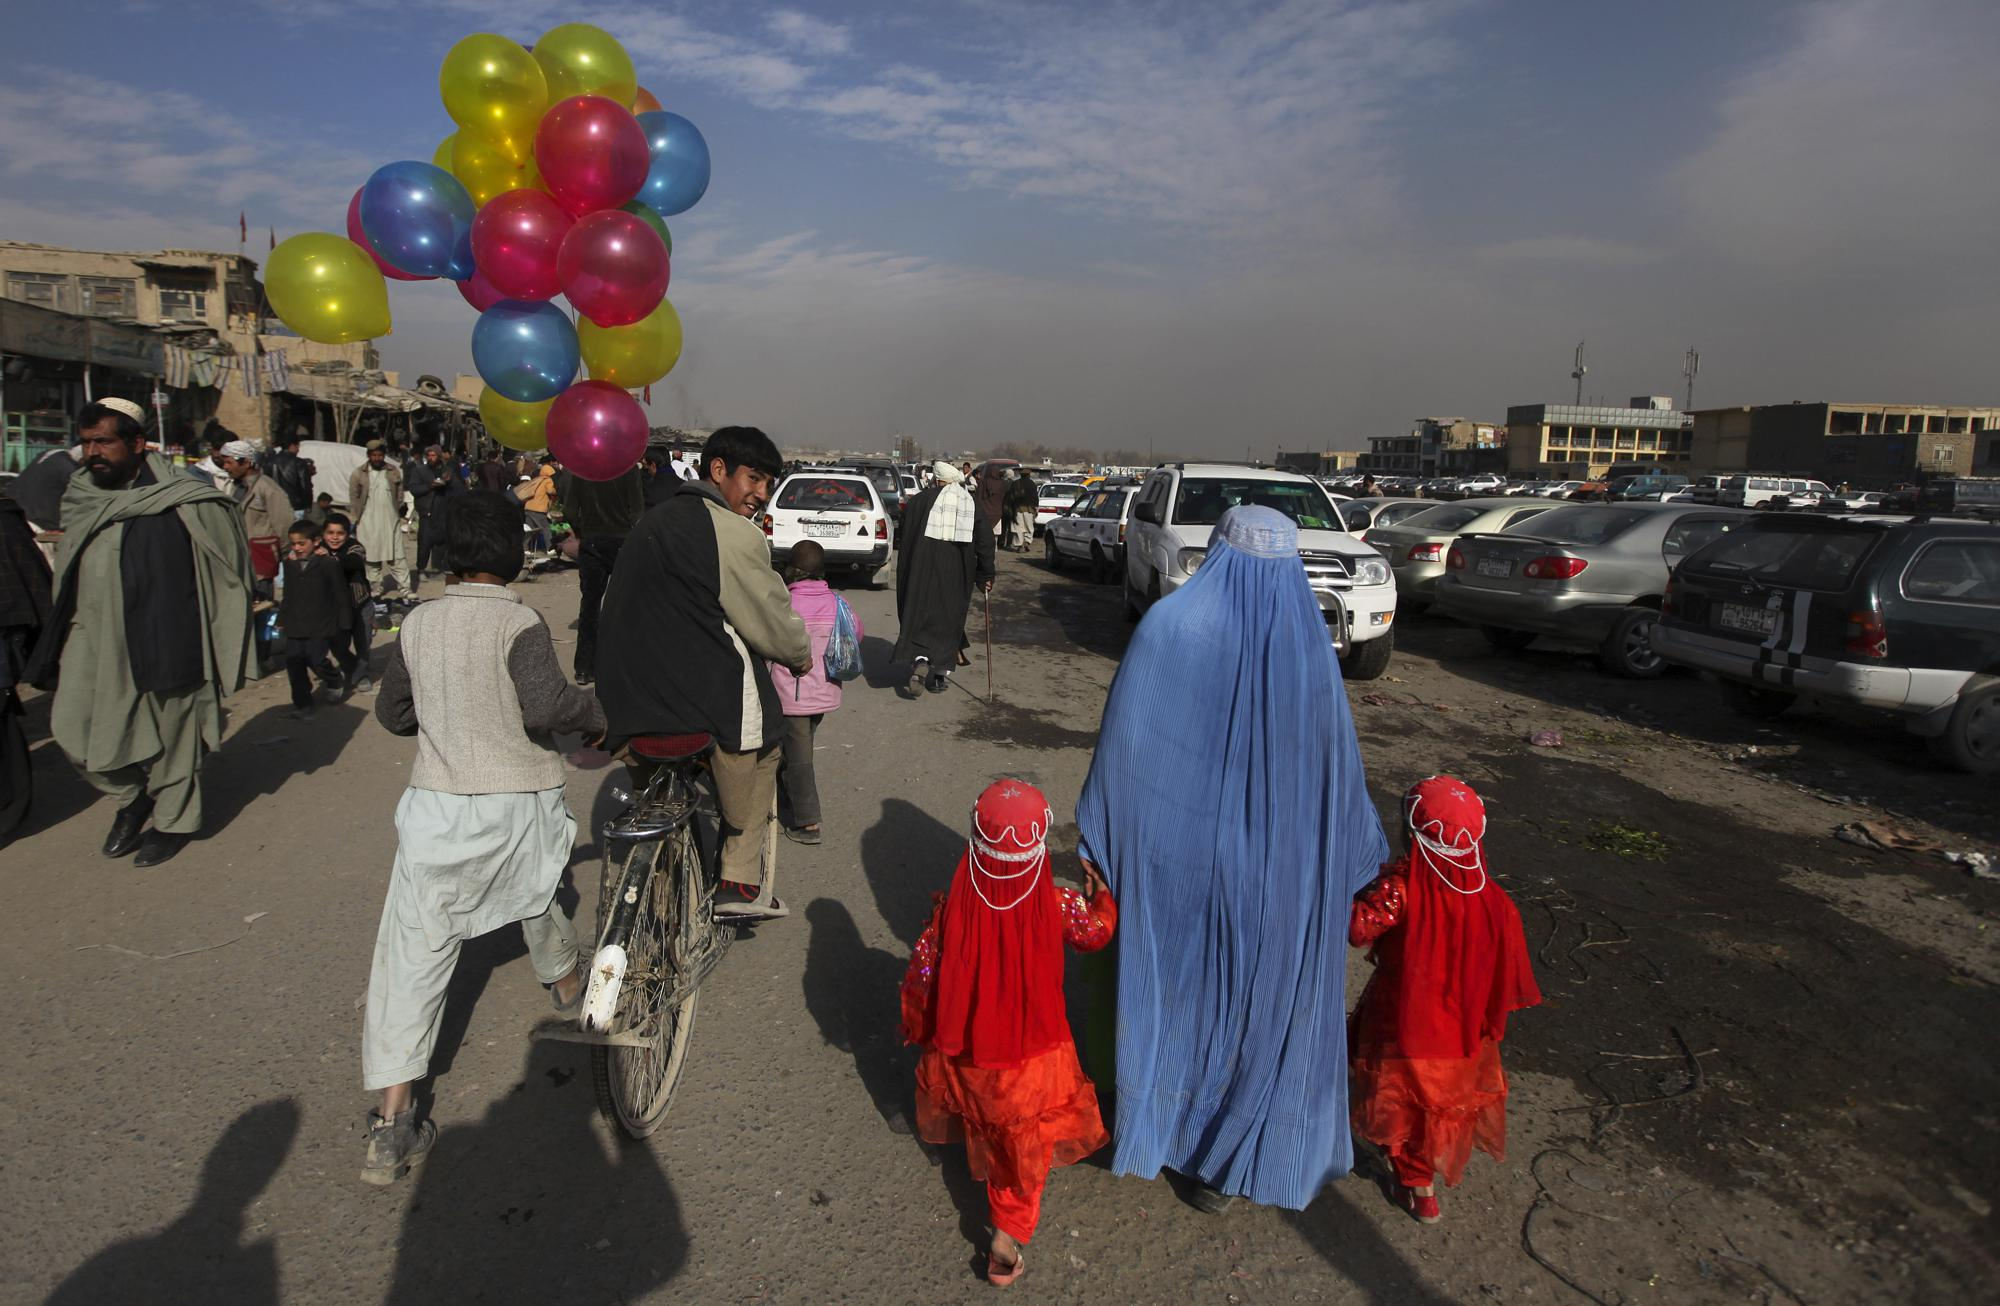 FILE - In this Jan. 3, 2011 file photo, a balloon seller riding a bicycle looks towards a woman holding hands with two young girls at a market in Kabul, Afghanistan. (AP Photo/Altaf Qadri, File)